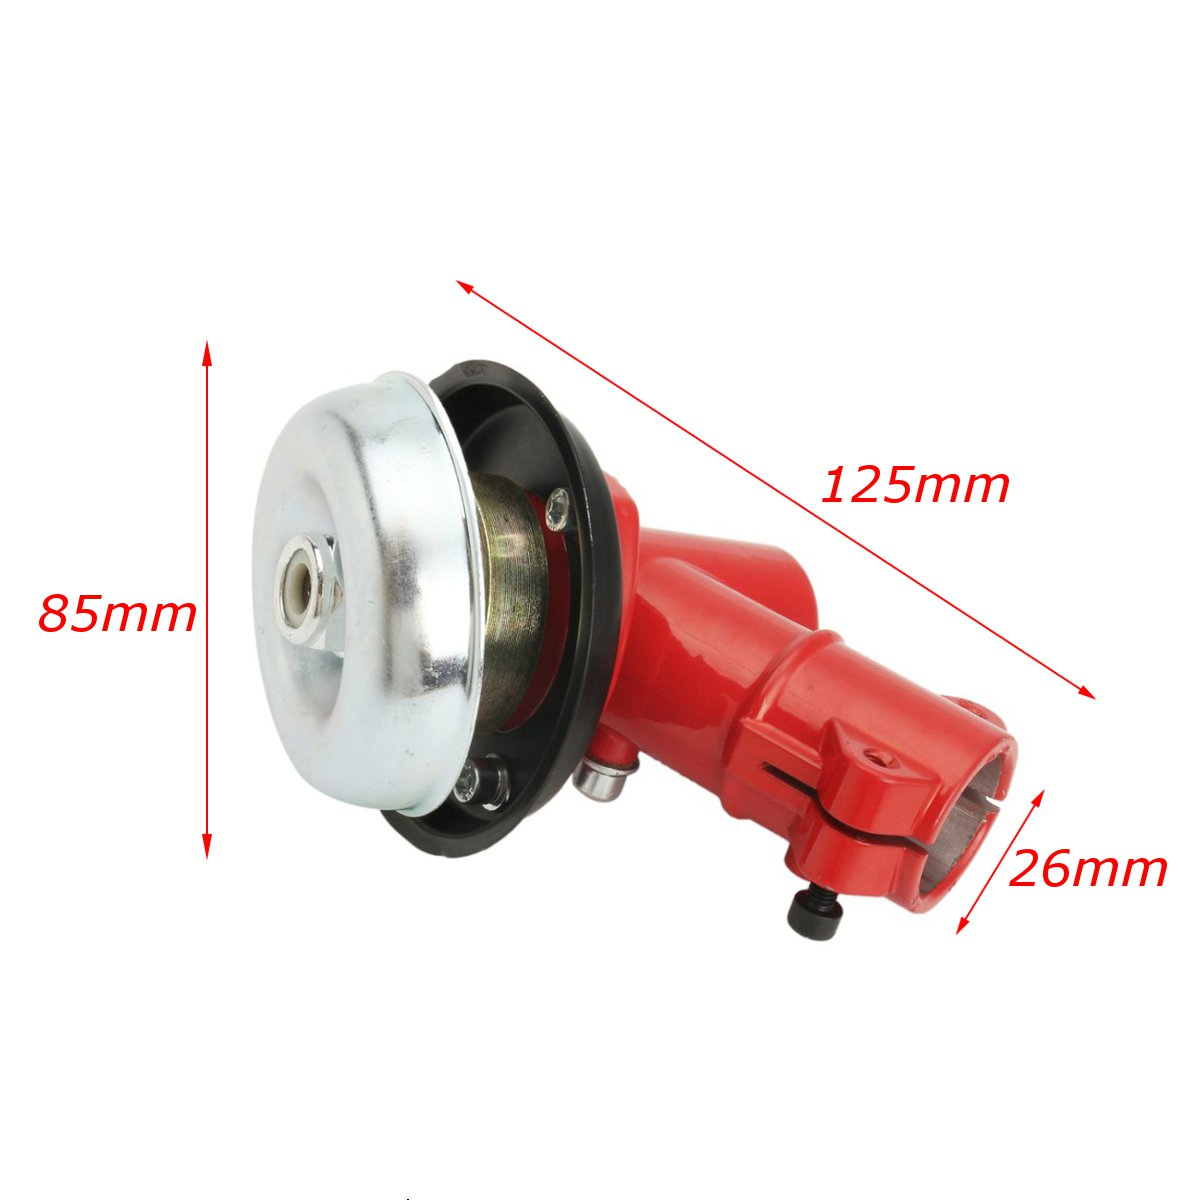 26MM 7 Teeth Brushcutter Head Gearbox Pole Saw Chainsaw Hedge Trimmer Whipper Snipper